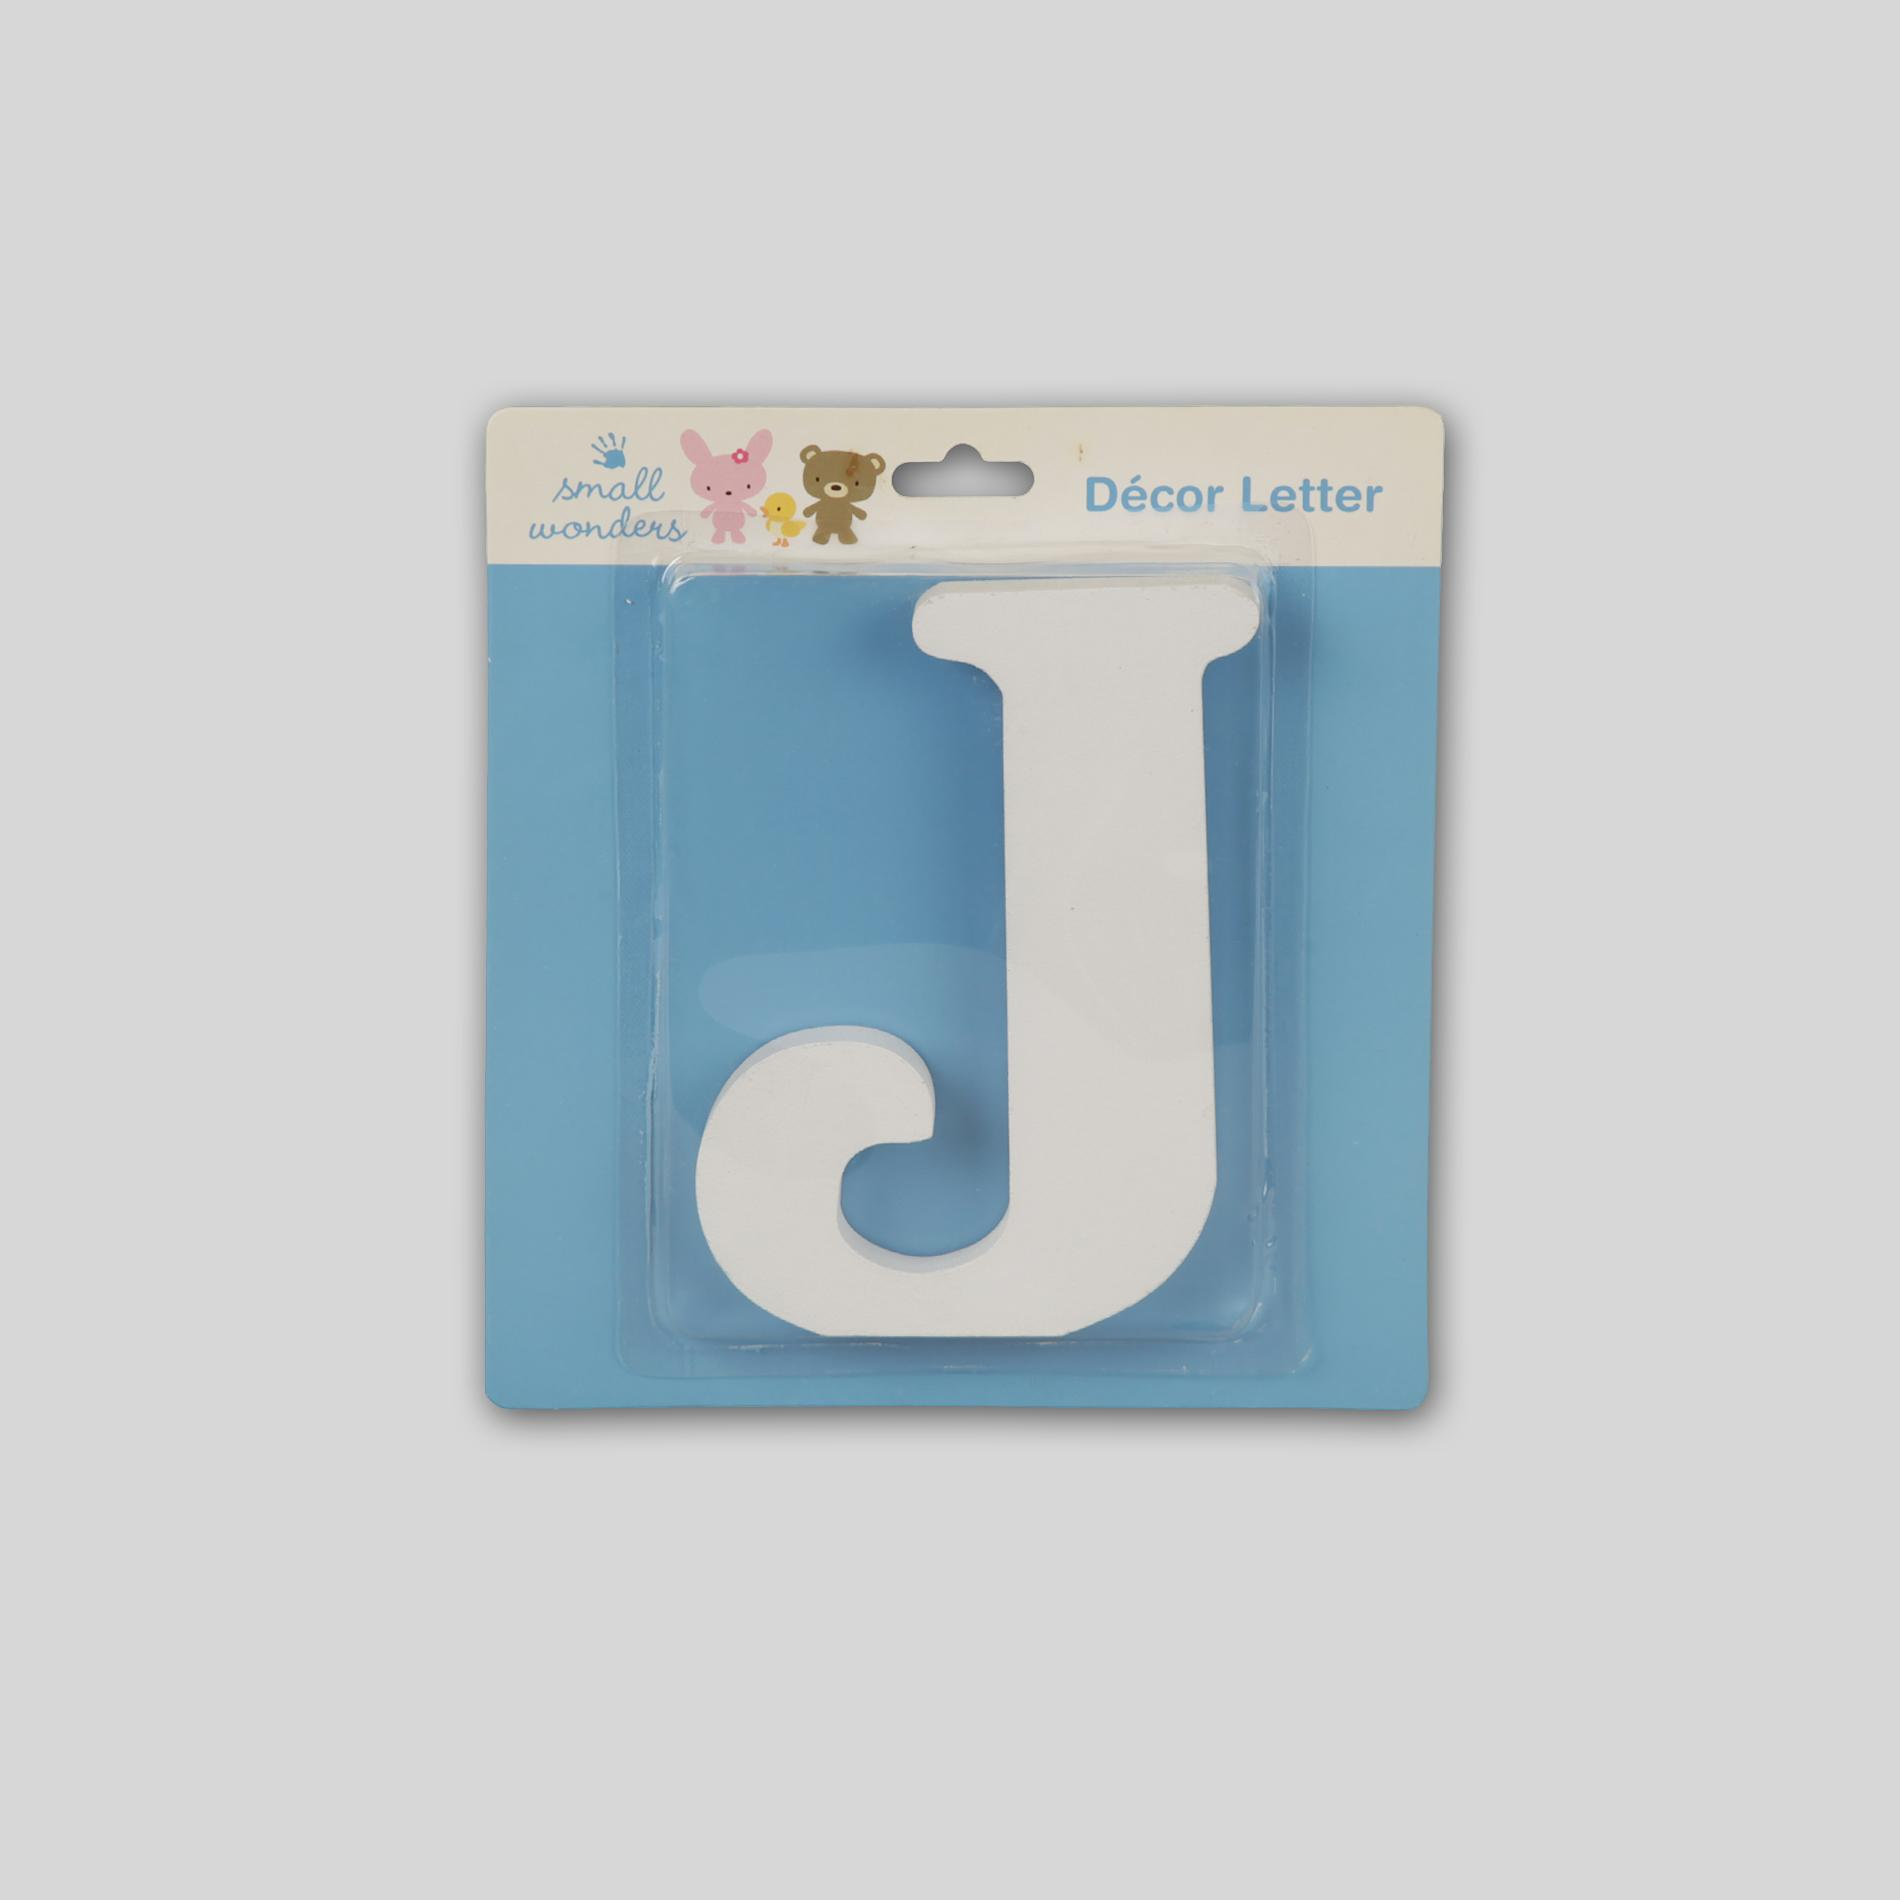 Small Wonders Wooden Letter Wall Decor - Letter J